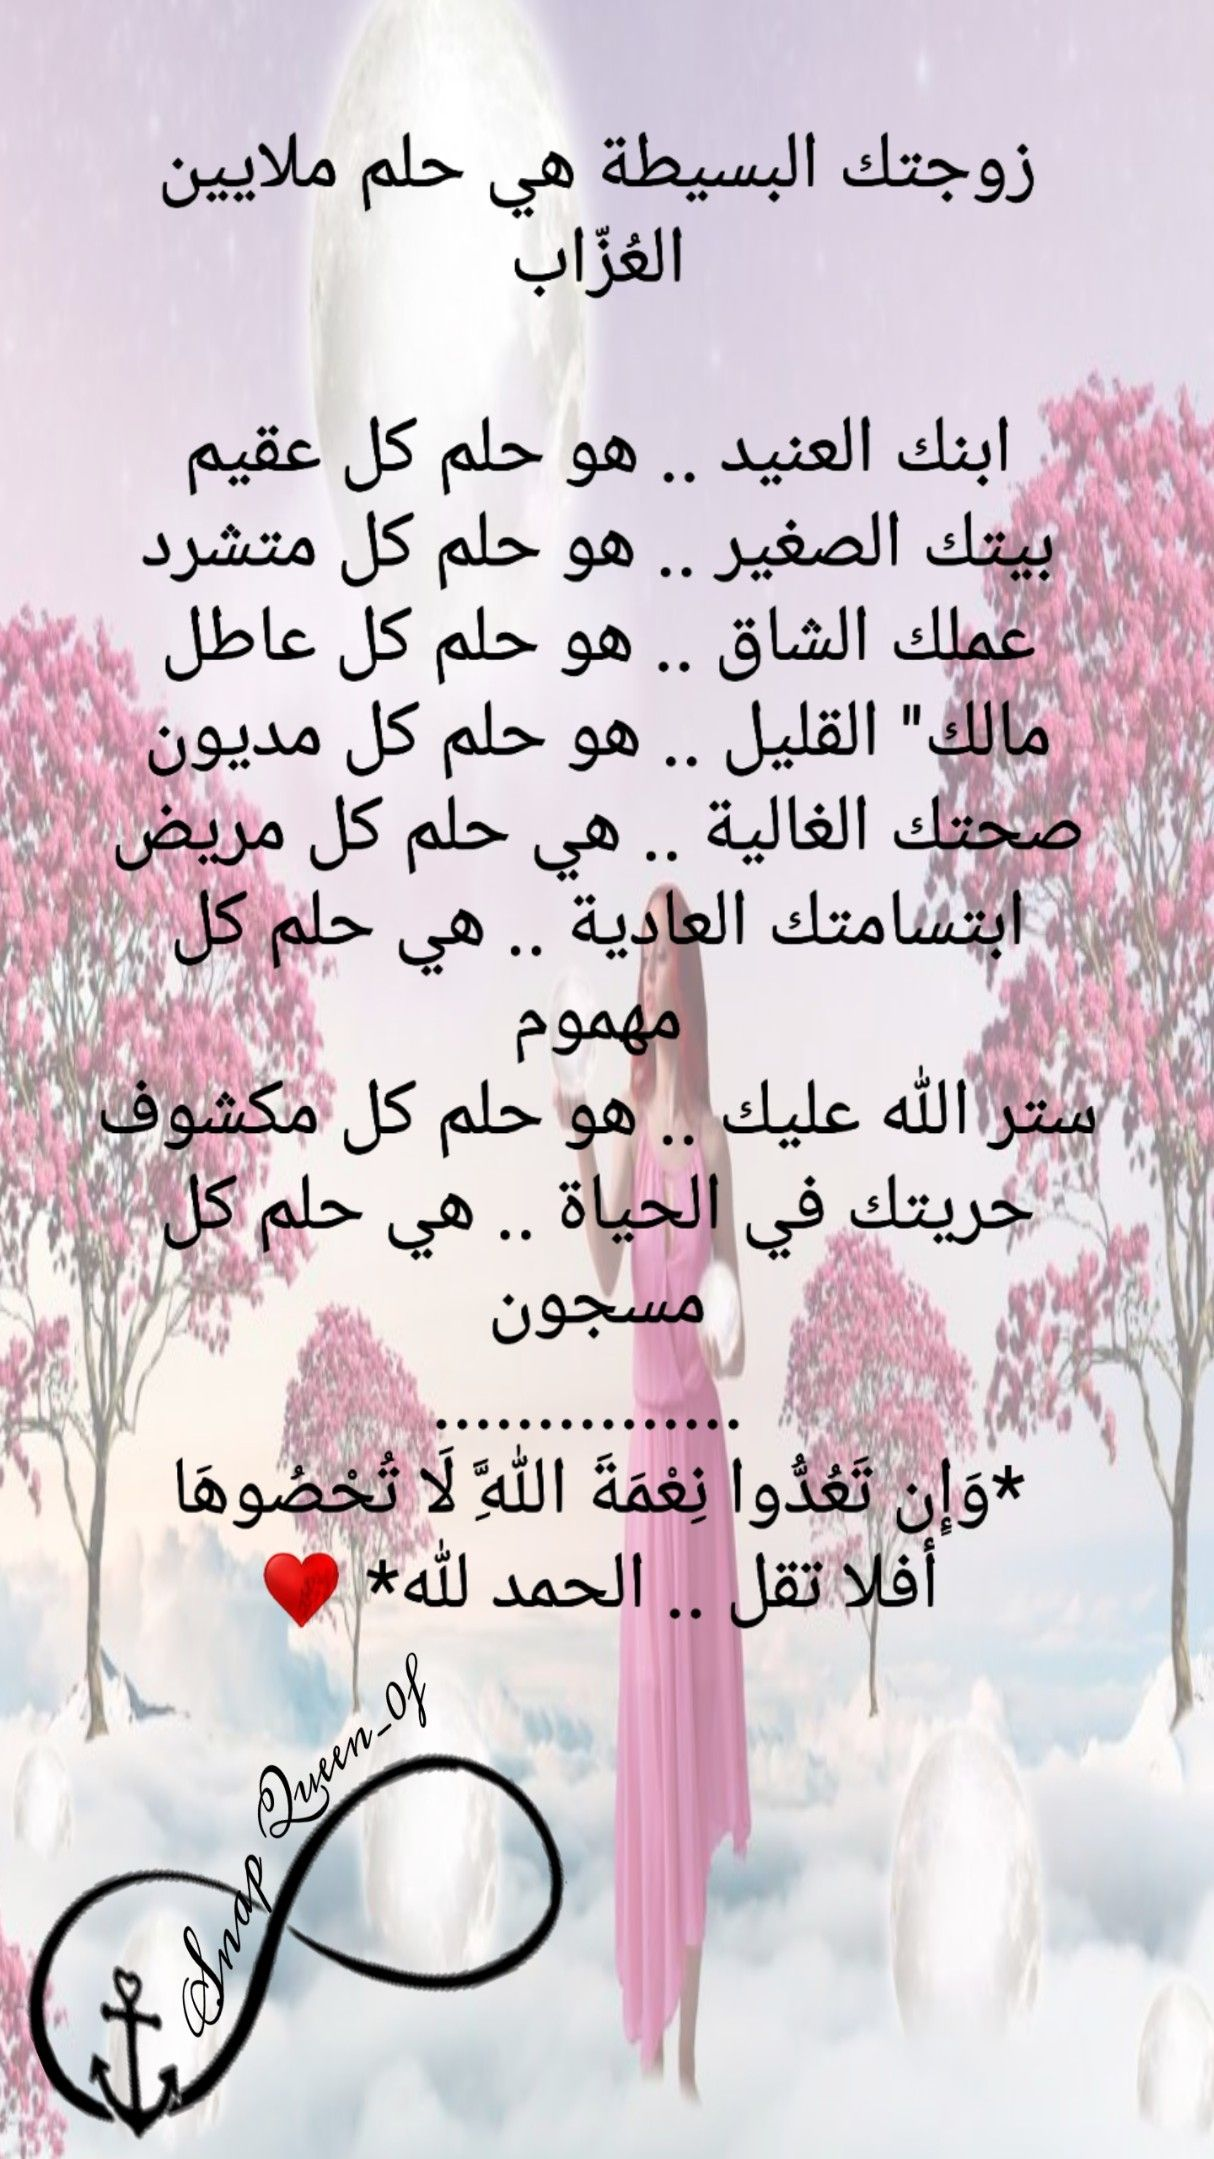 Pin By سيده الذوق On سناب شات سنابي تابعوني Word Search Puzzle Words Word Search